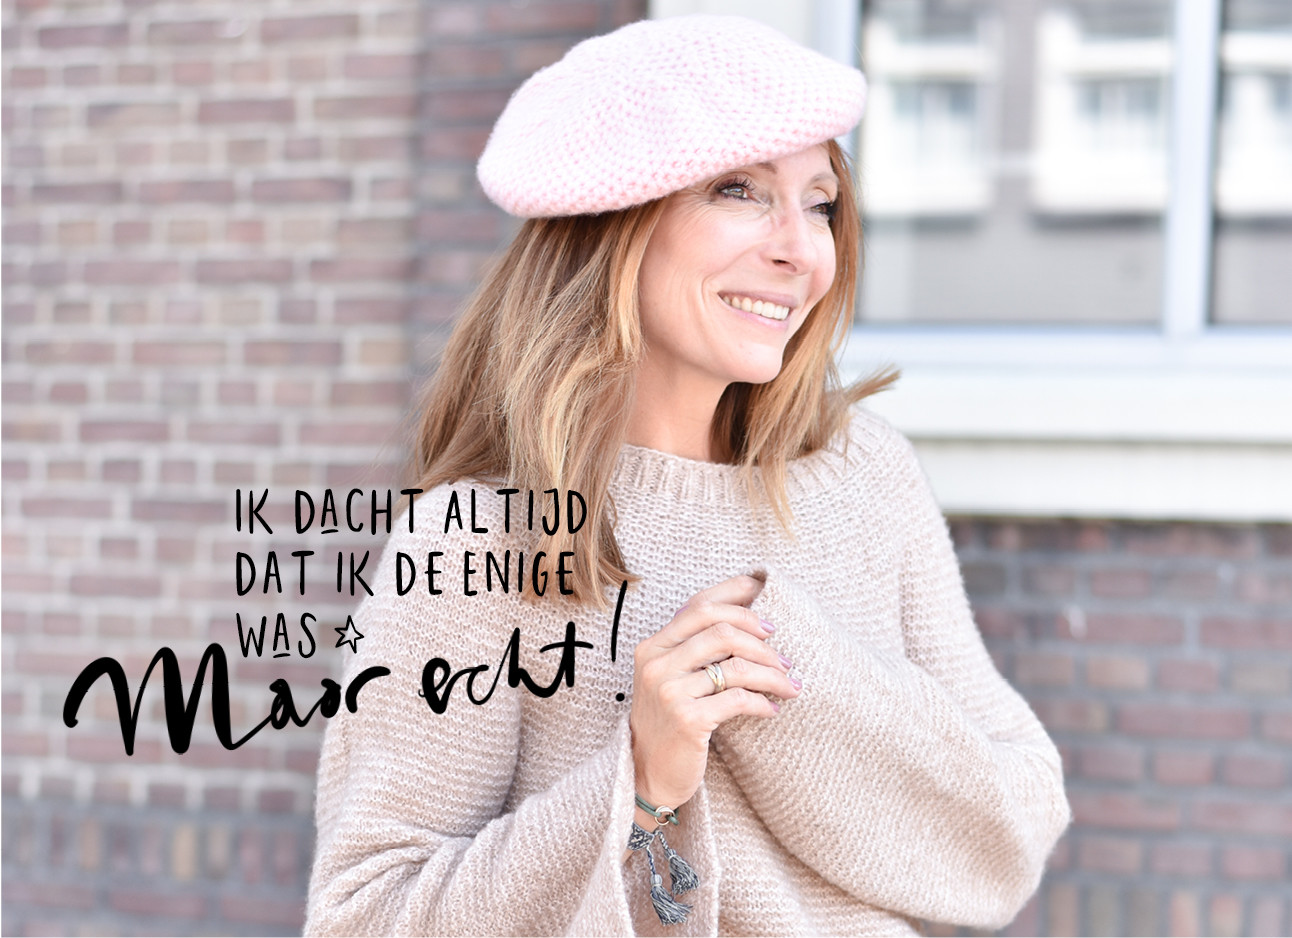 MayBritt lachend in een lichtroze outfit